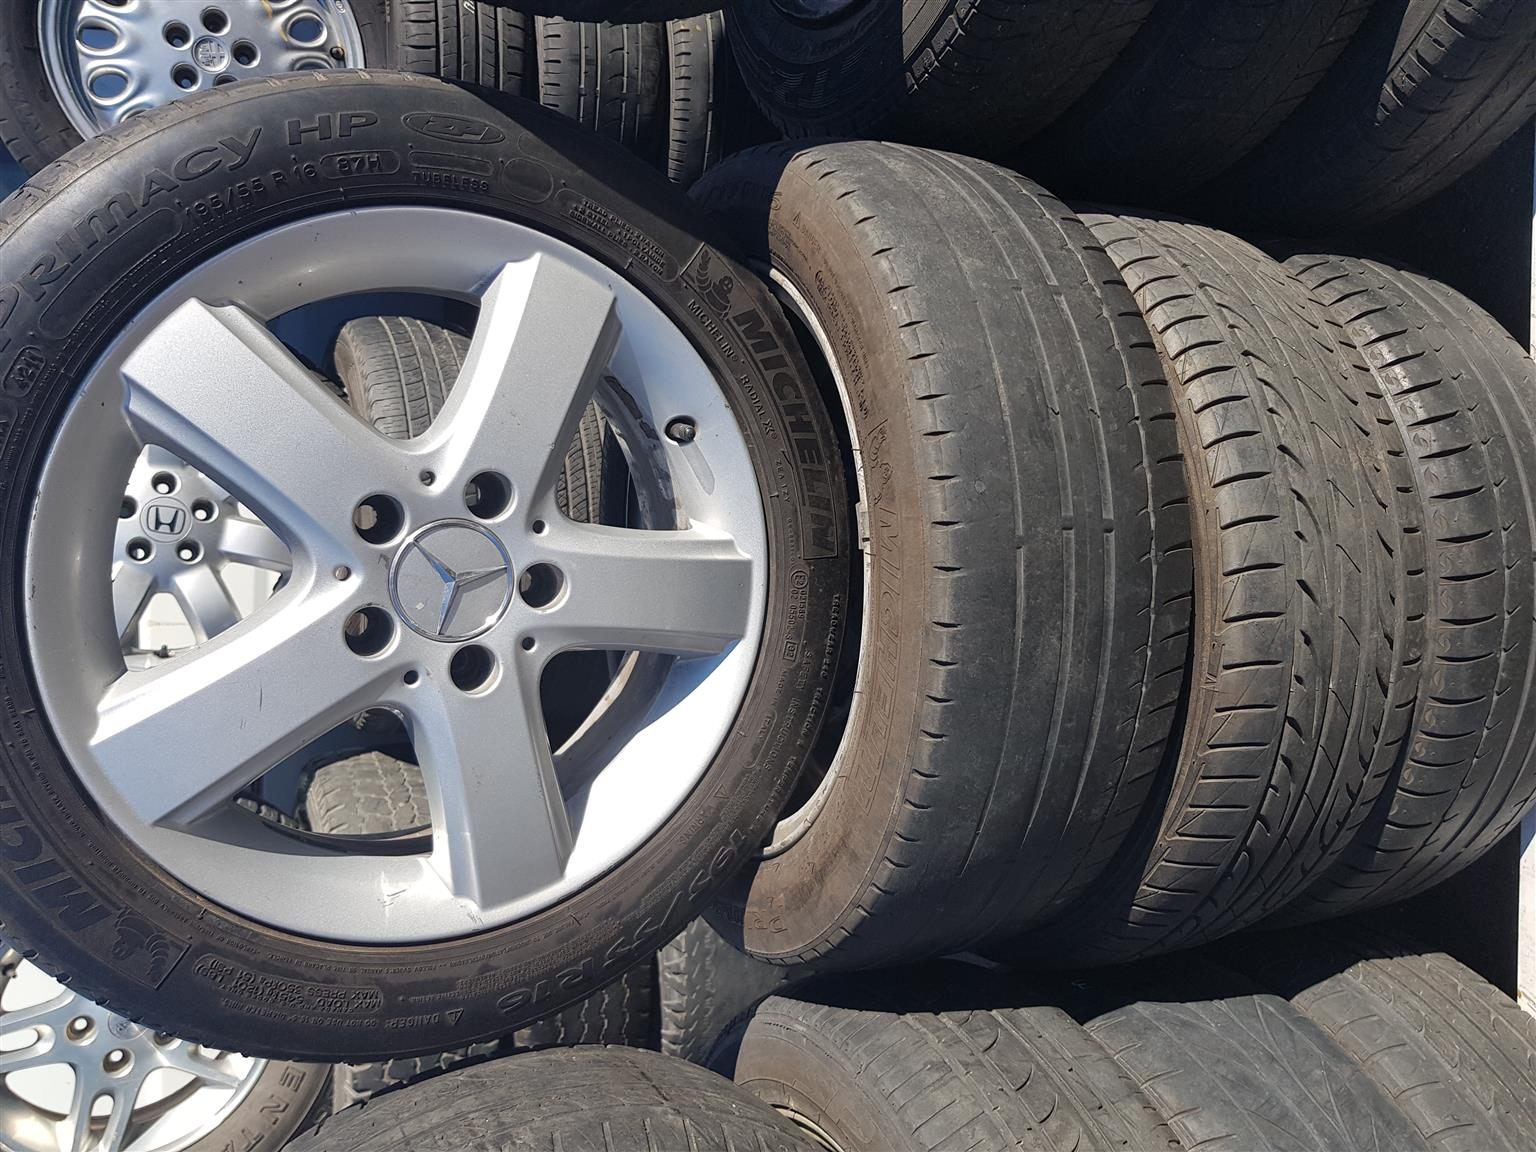 Mercedes mag rims and tyres 195.55R16